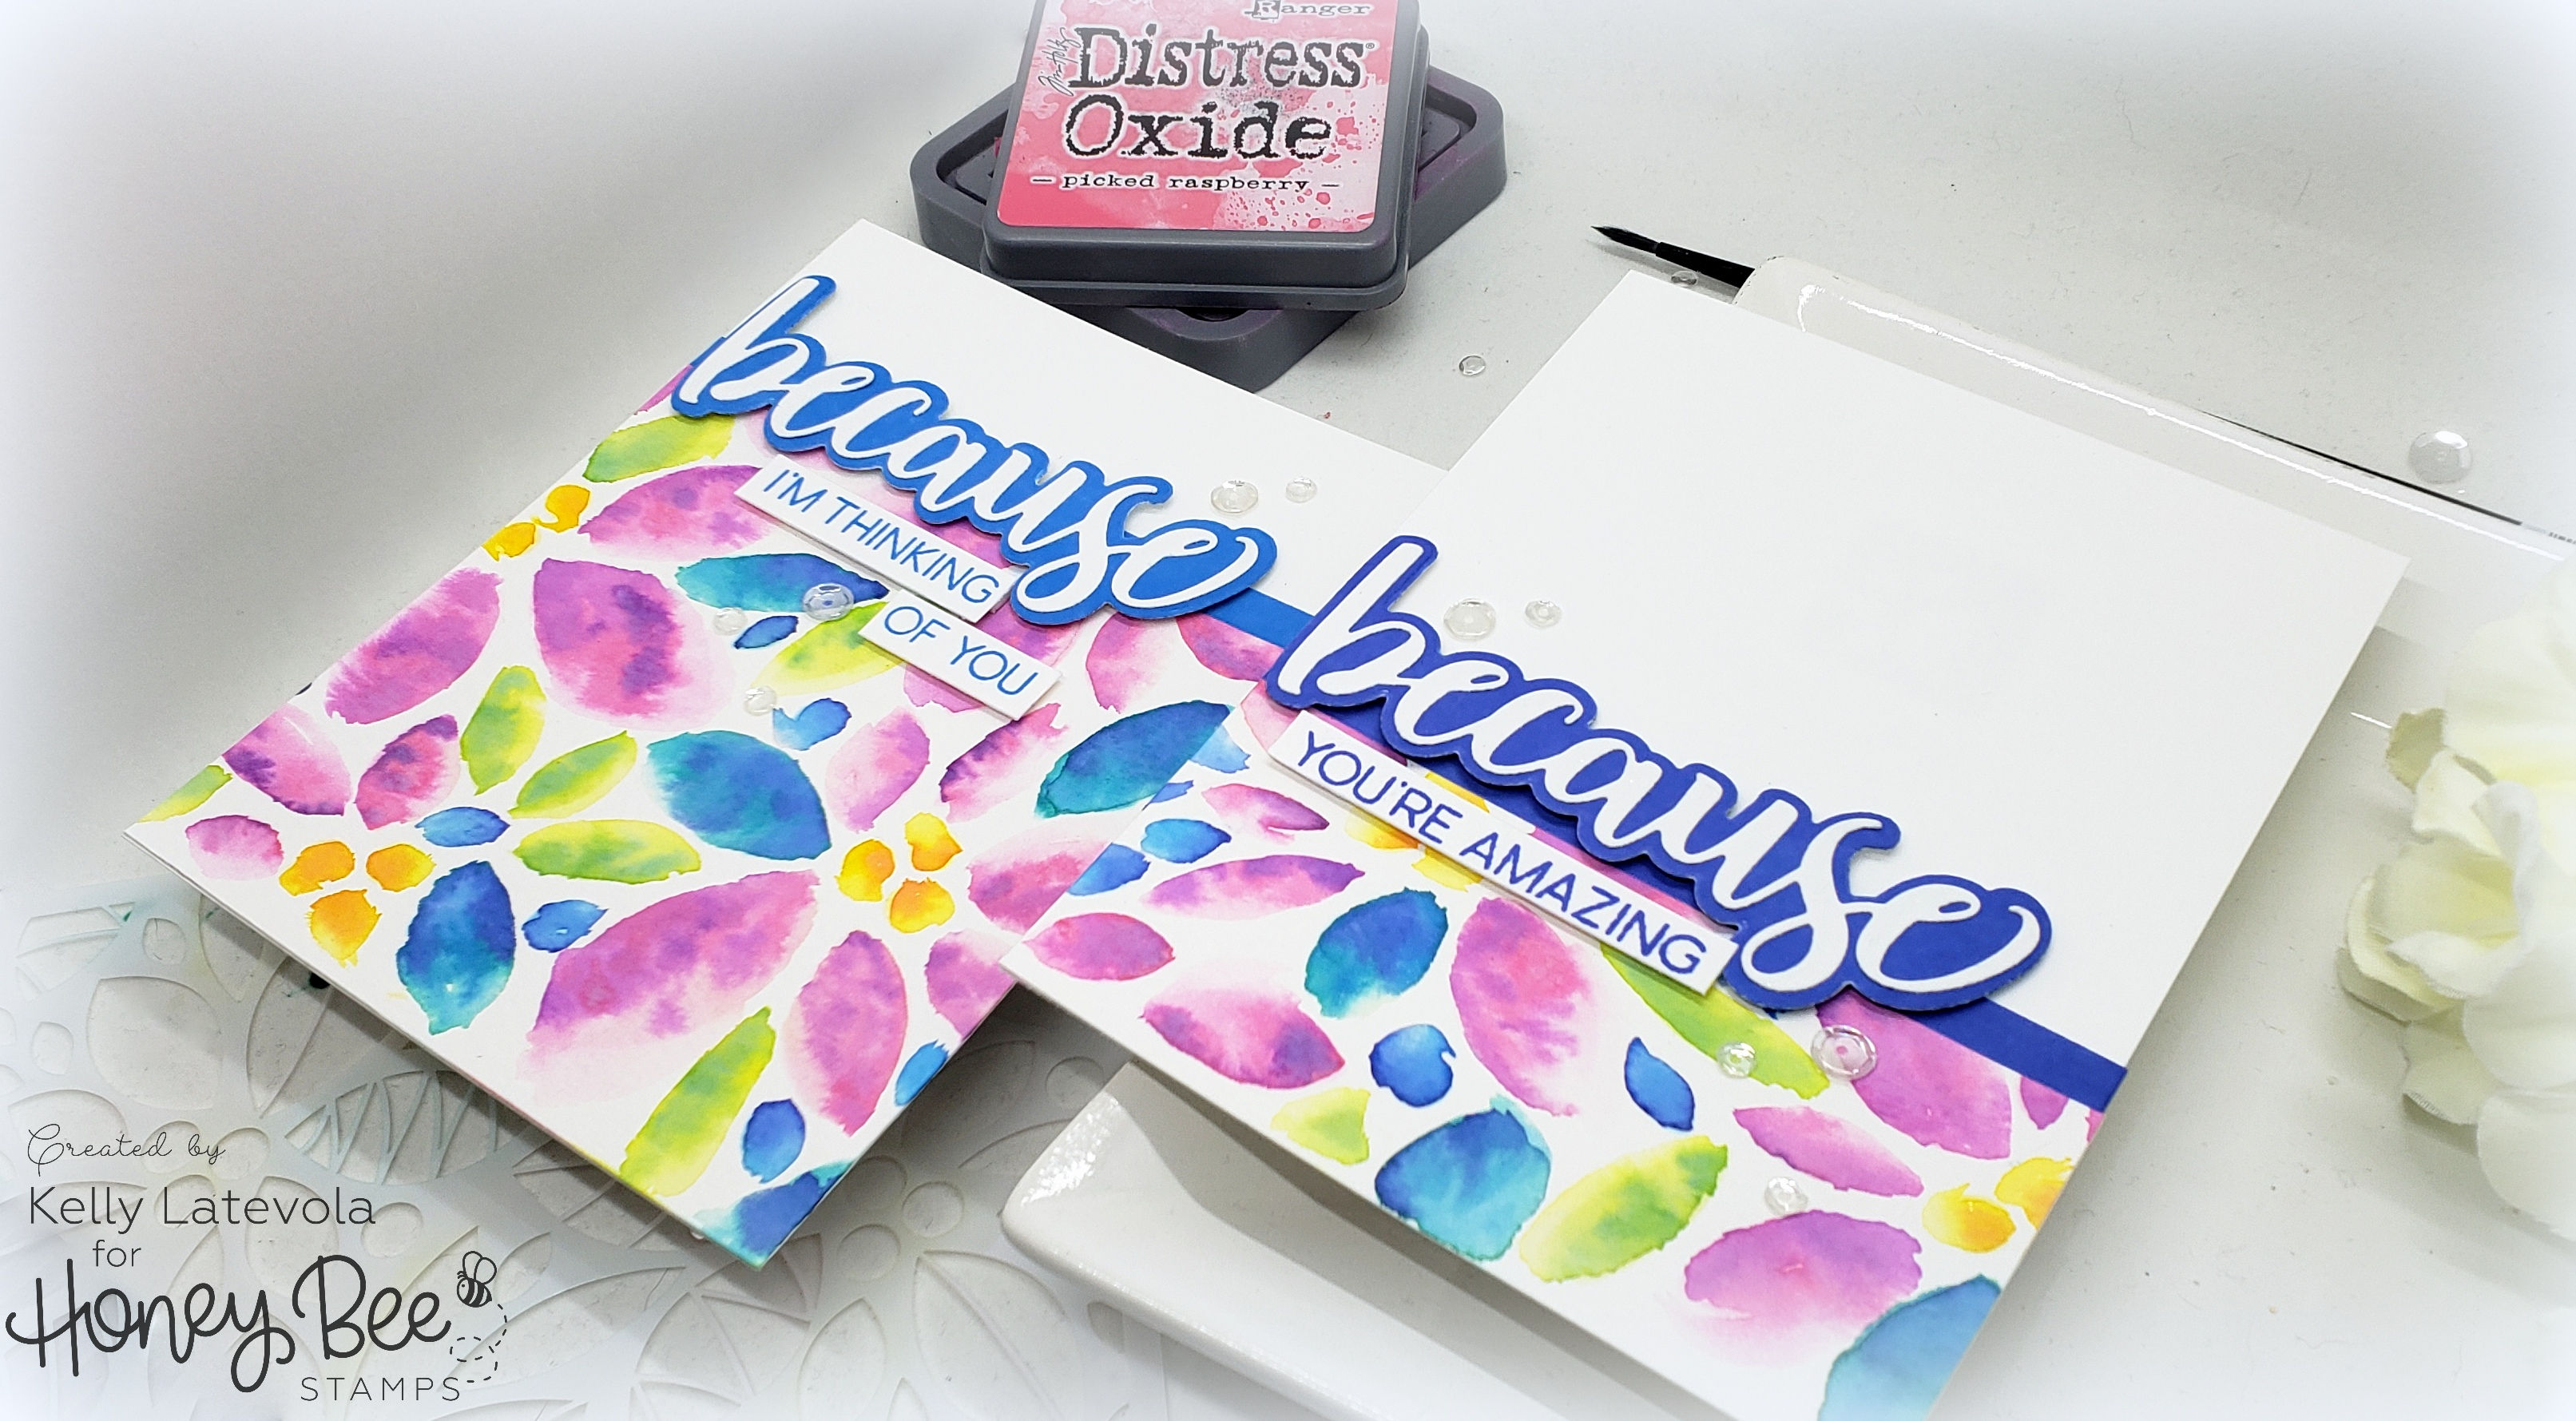 Easy No-Line Watercolor using Distress Oxides with Kelly Latevola